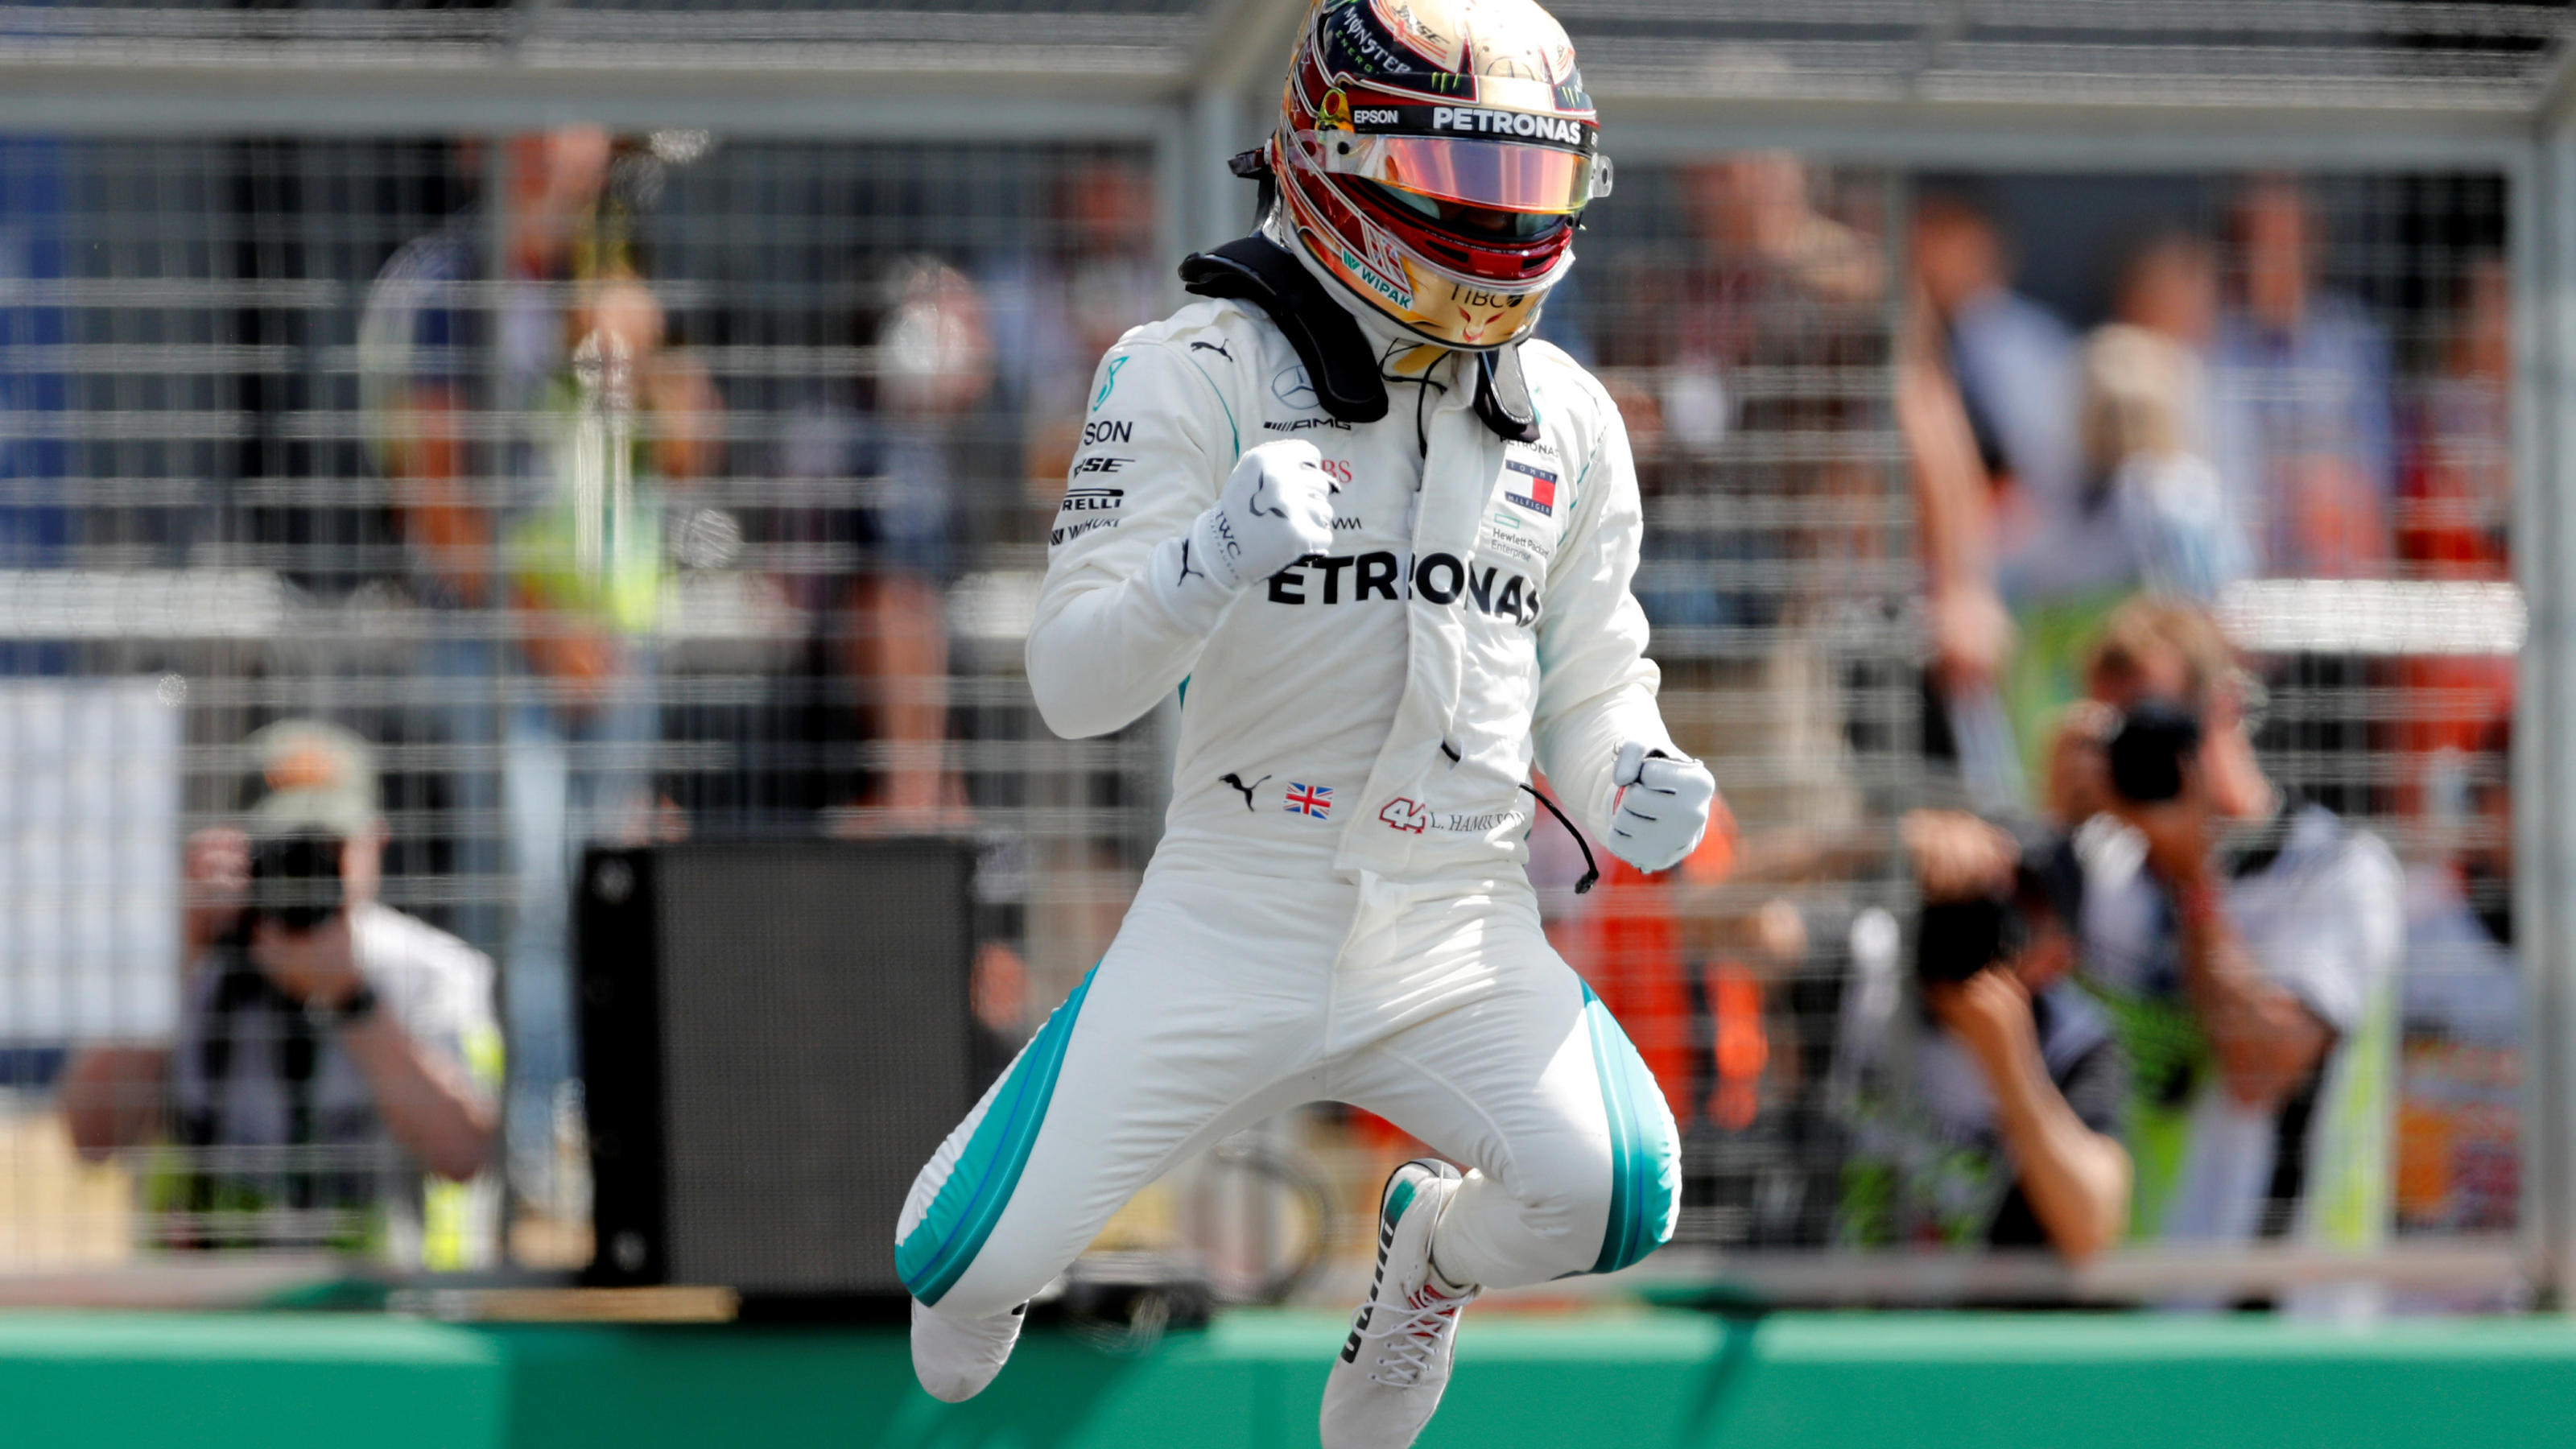 Formula One F1 - British Grand Prix - Silverstone Circuit, Silverstone, Britain - July 7, 2018  MercedesÕ Lewis Hamilton celebrates after qualifying in pole position  Action Images via Reuters/Matthew Childs